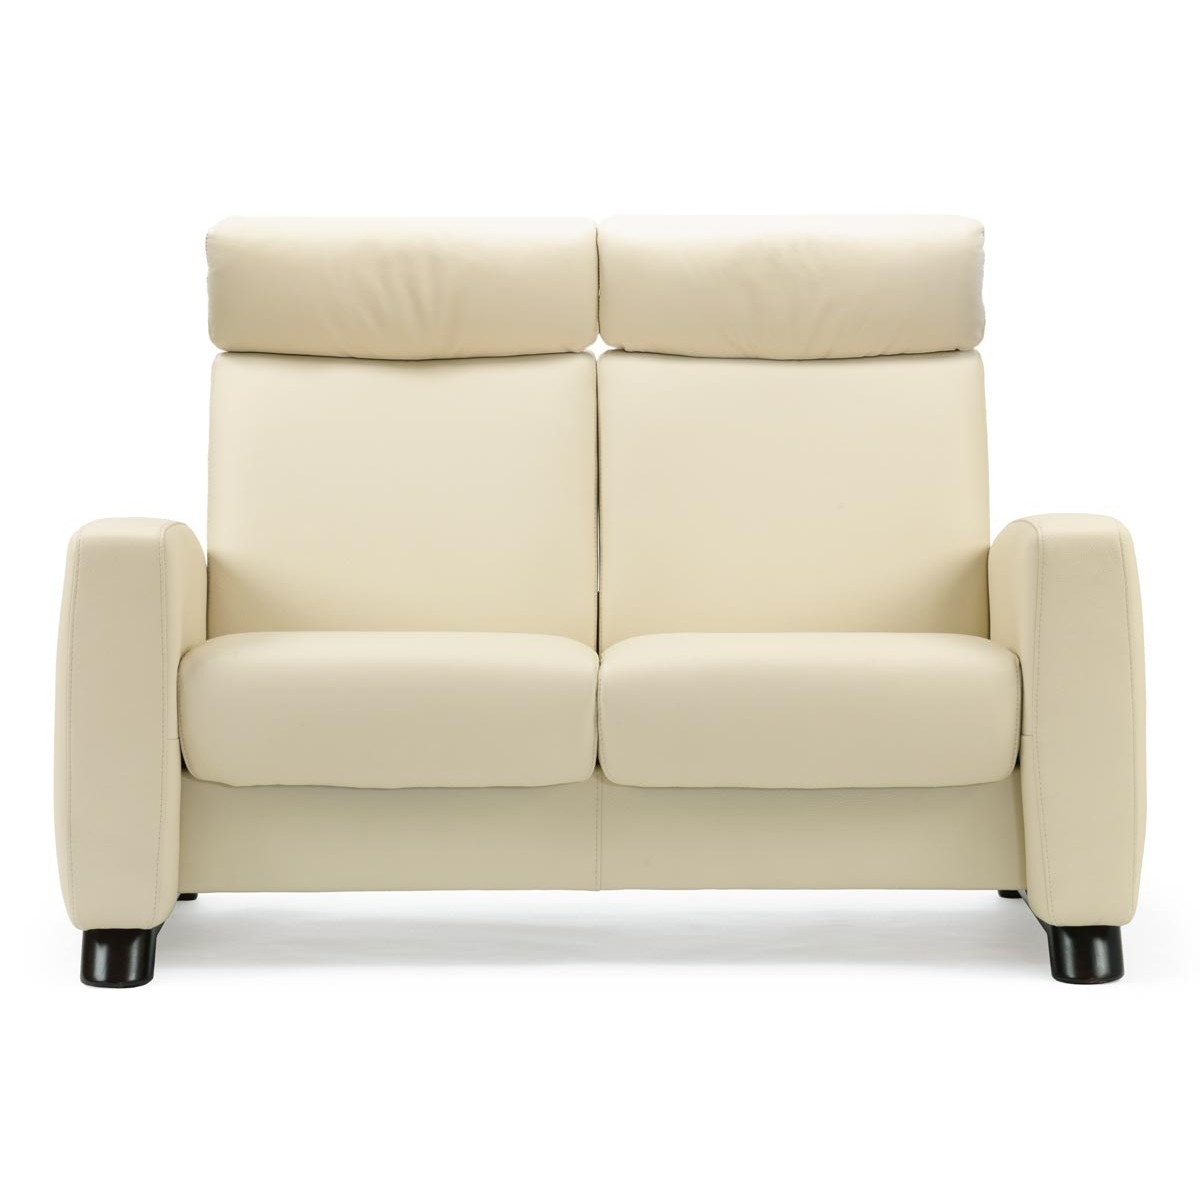 high back sofa and loveseat contemporary sofas india stressless arion from 4 095 00 by display gallery item 1